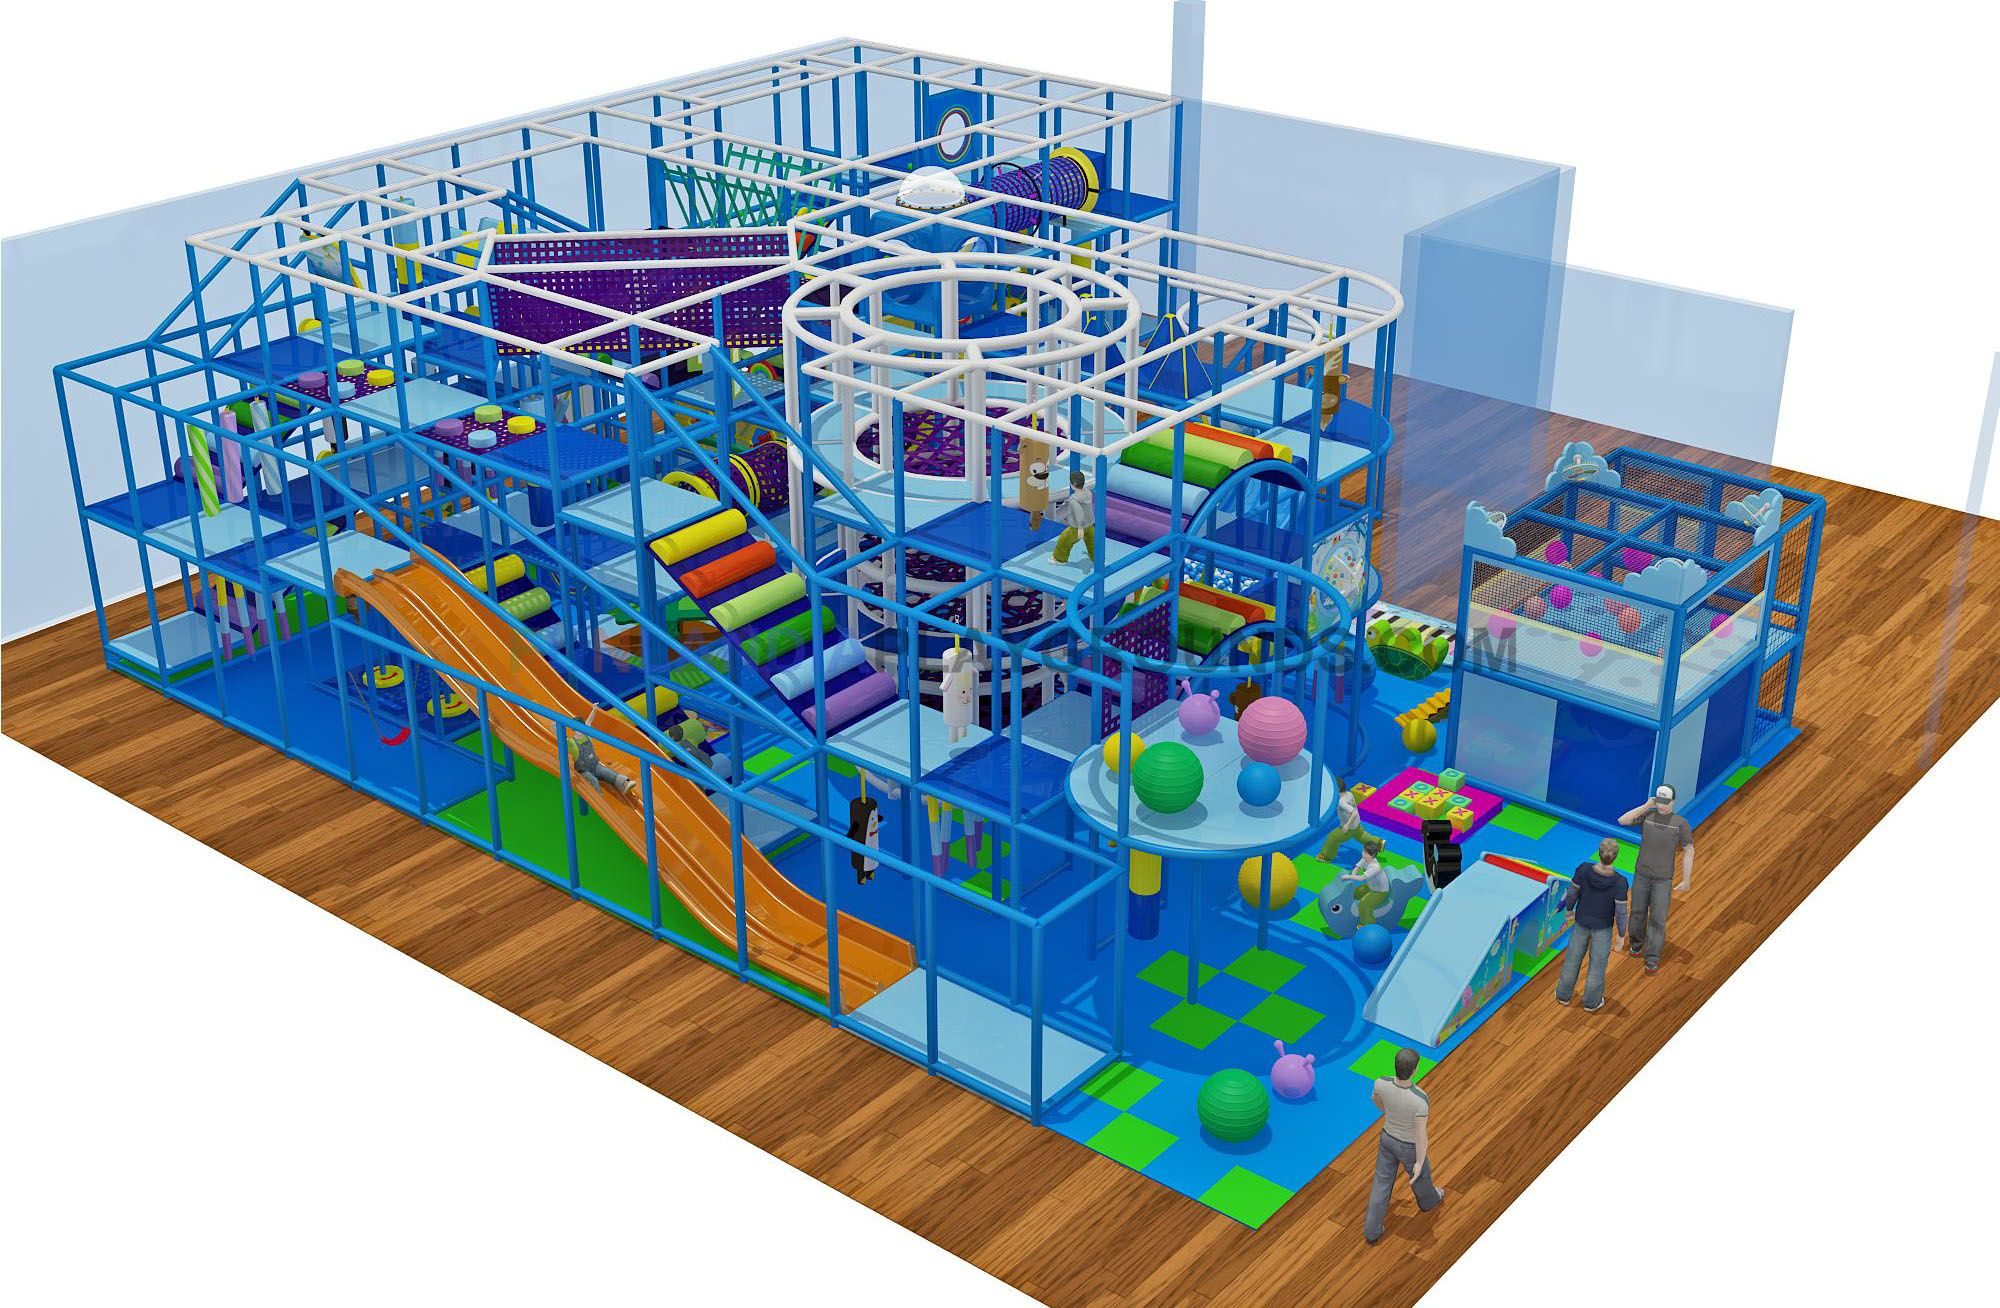 Urban Air Trampoline Park of Overland Park offers eight